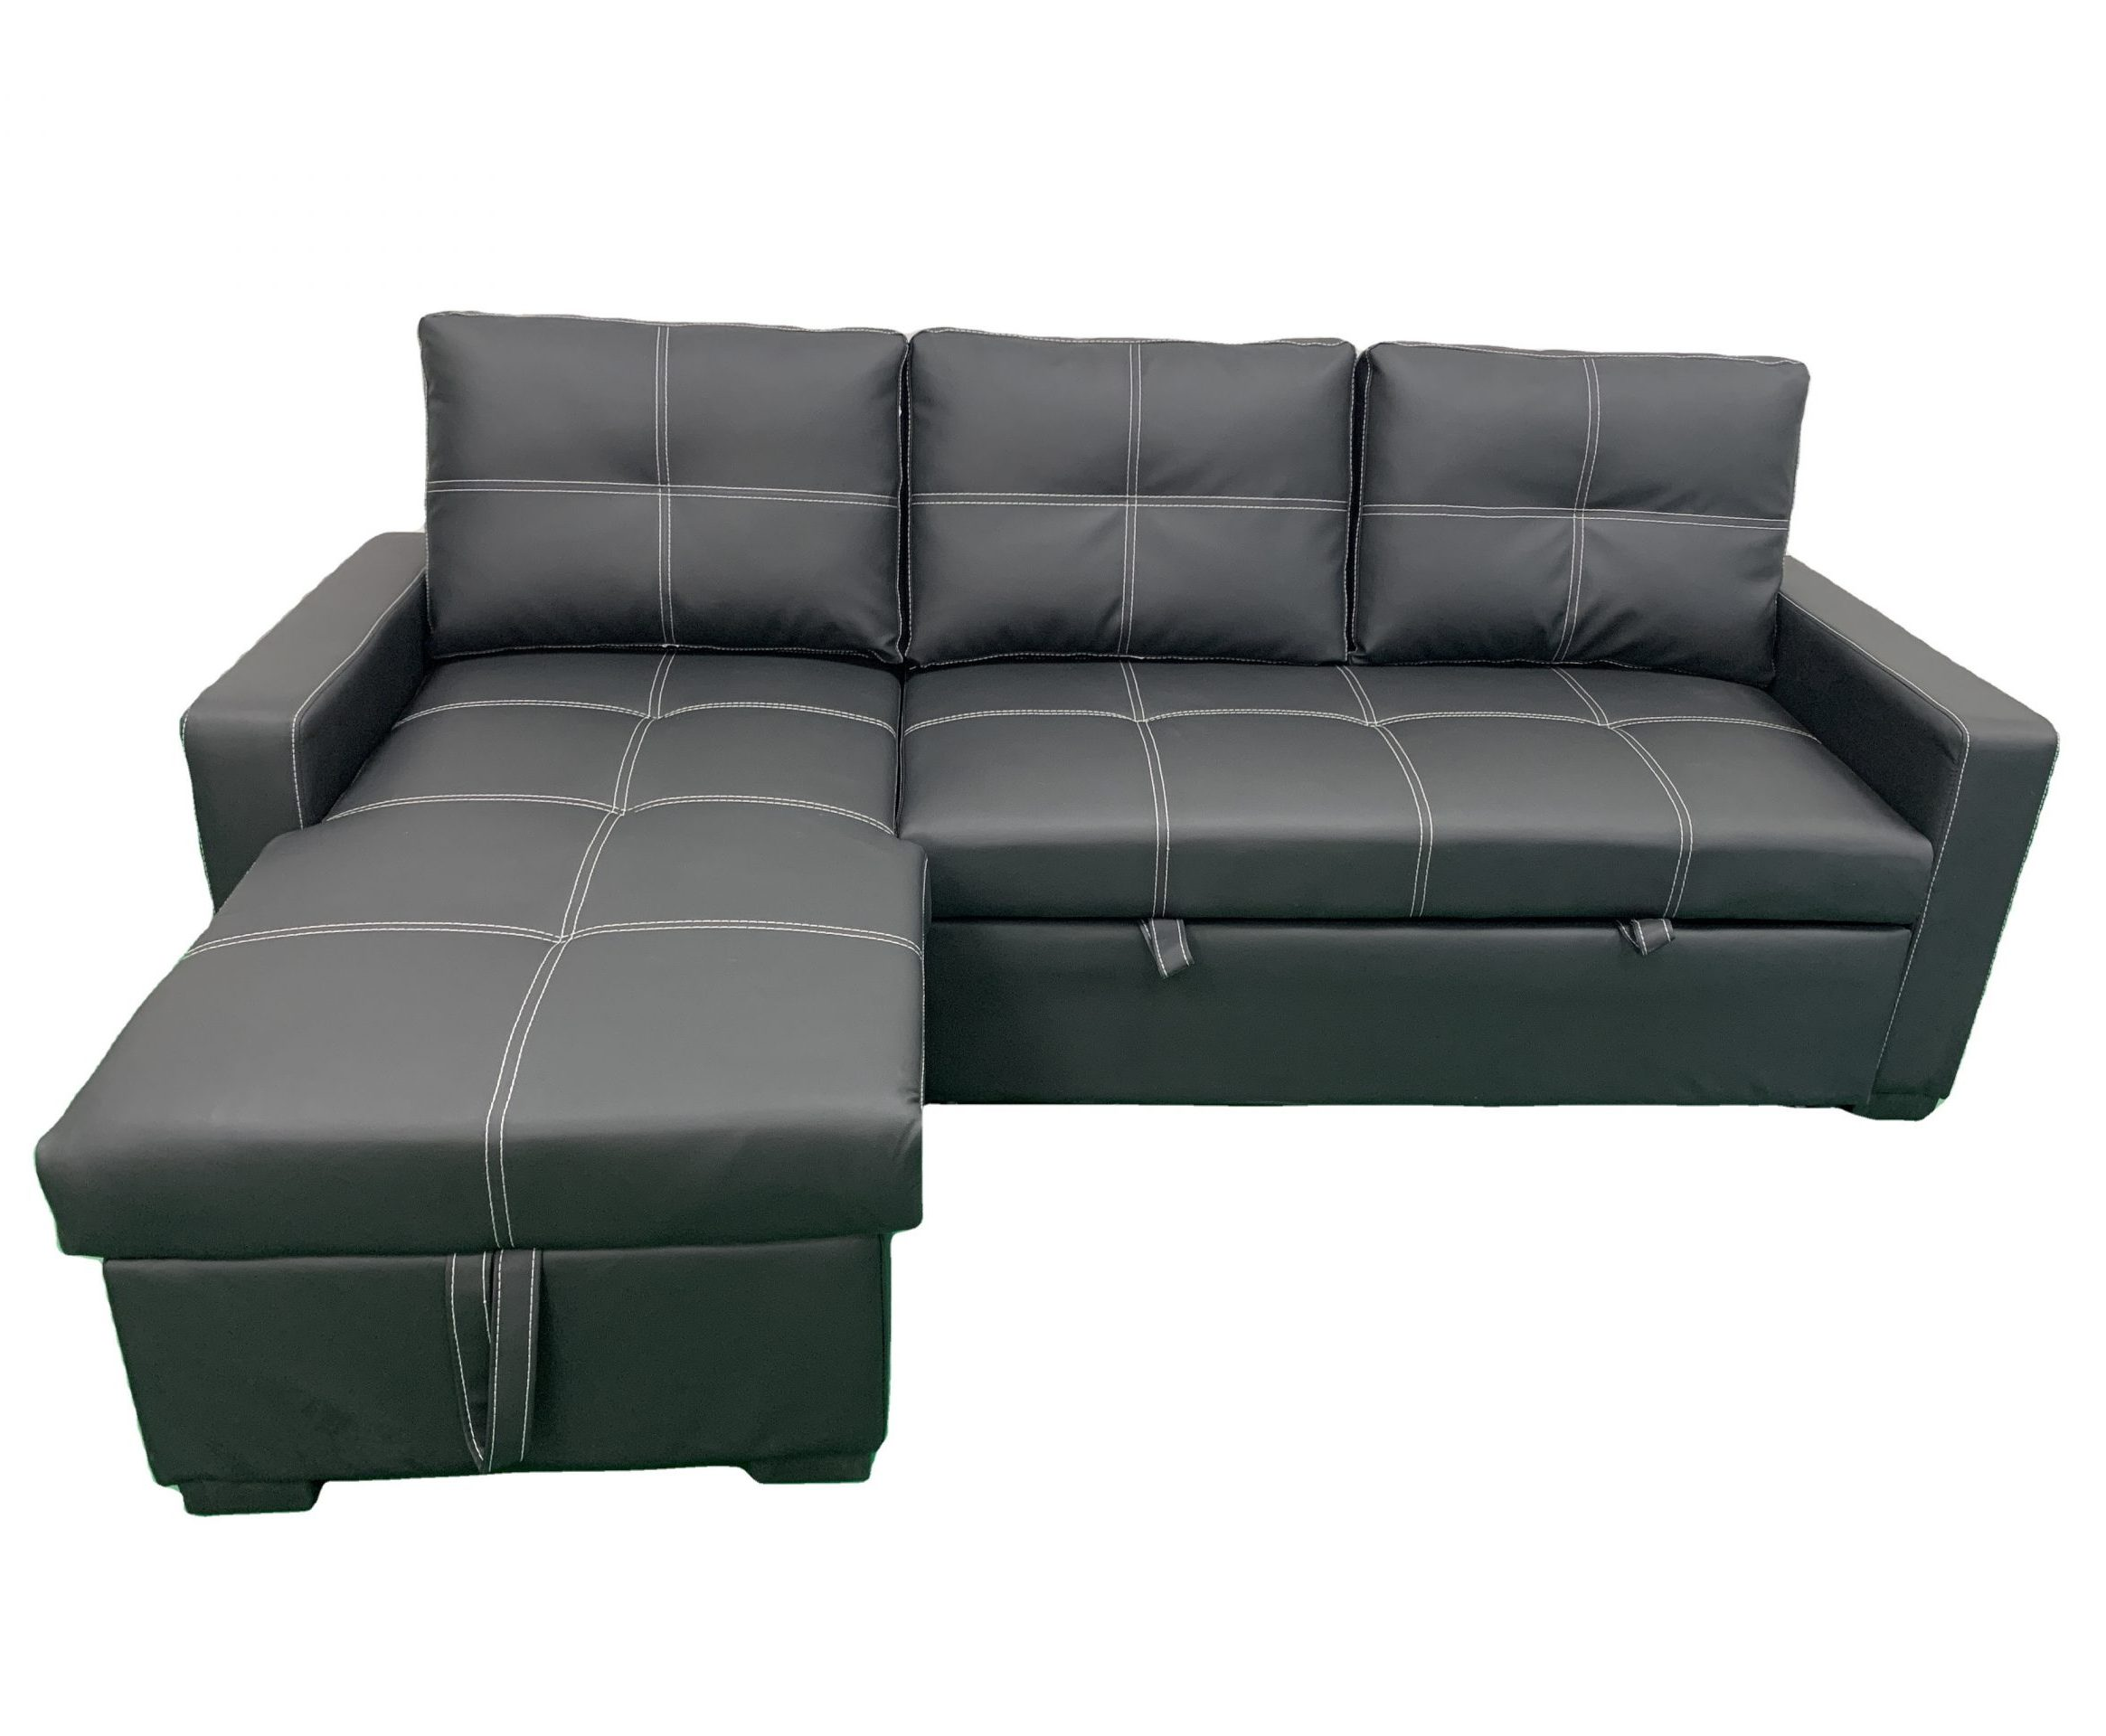 Black PU Leather Convertible Sofa Bed With Chaise Hidden Storage Couch BT1703